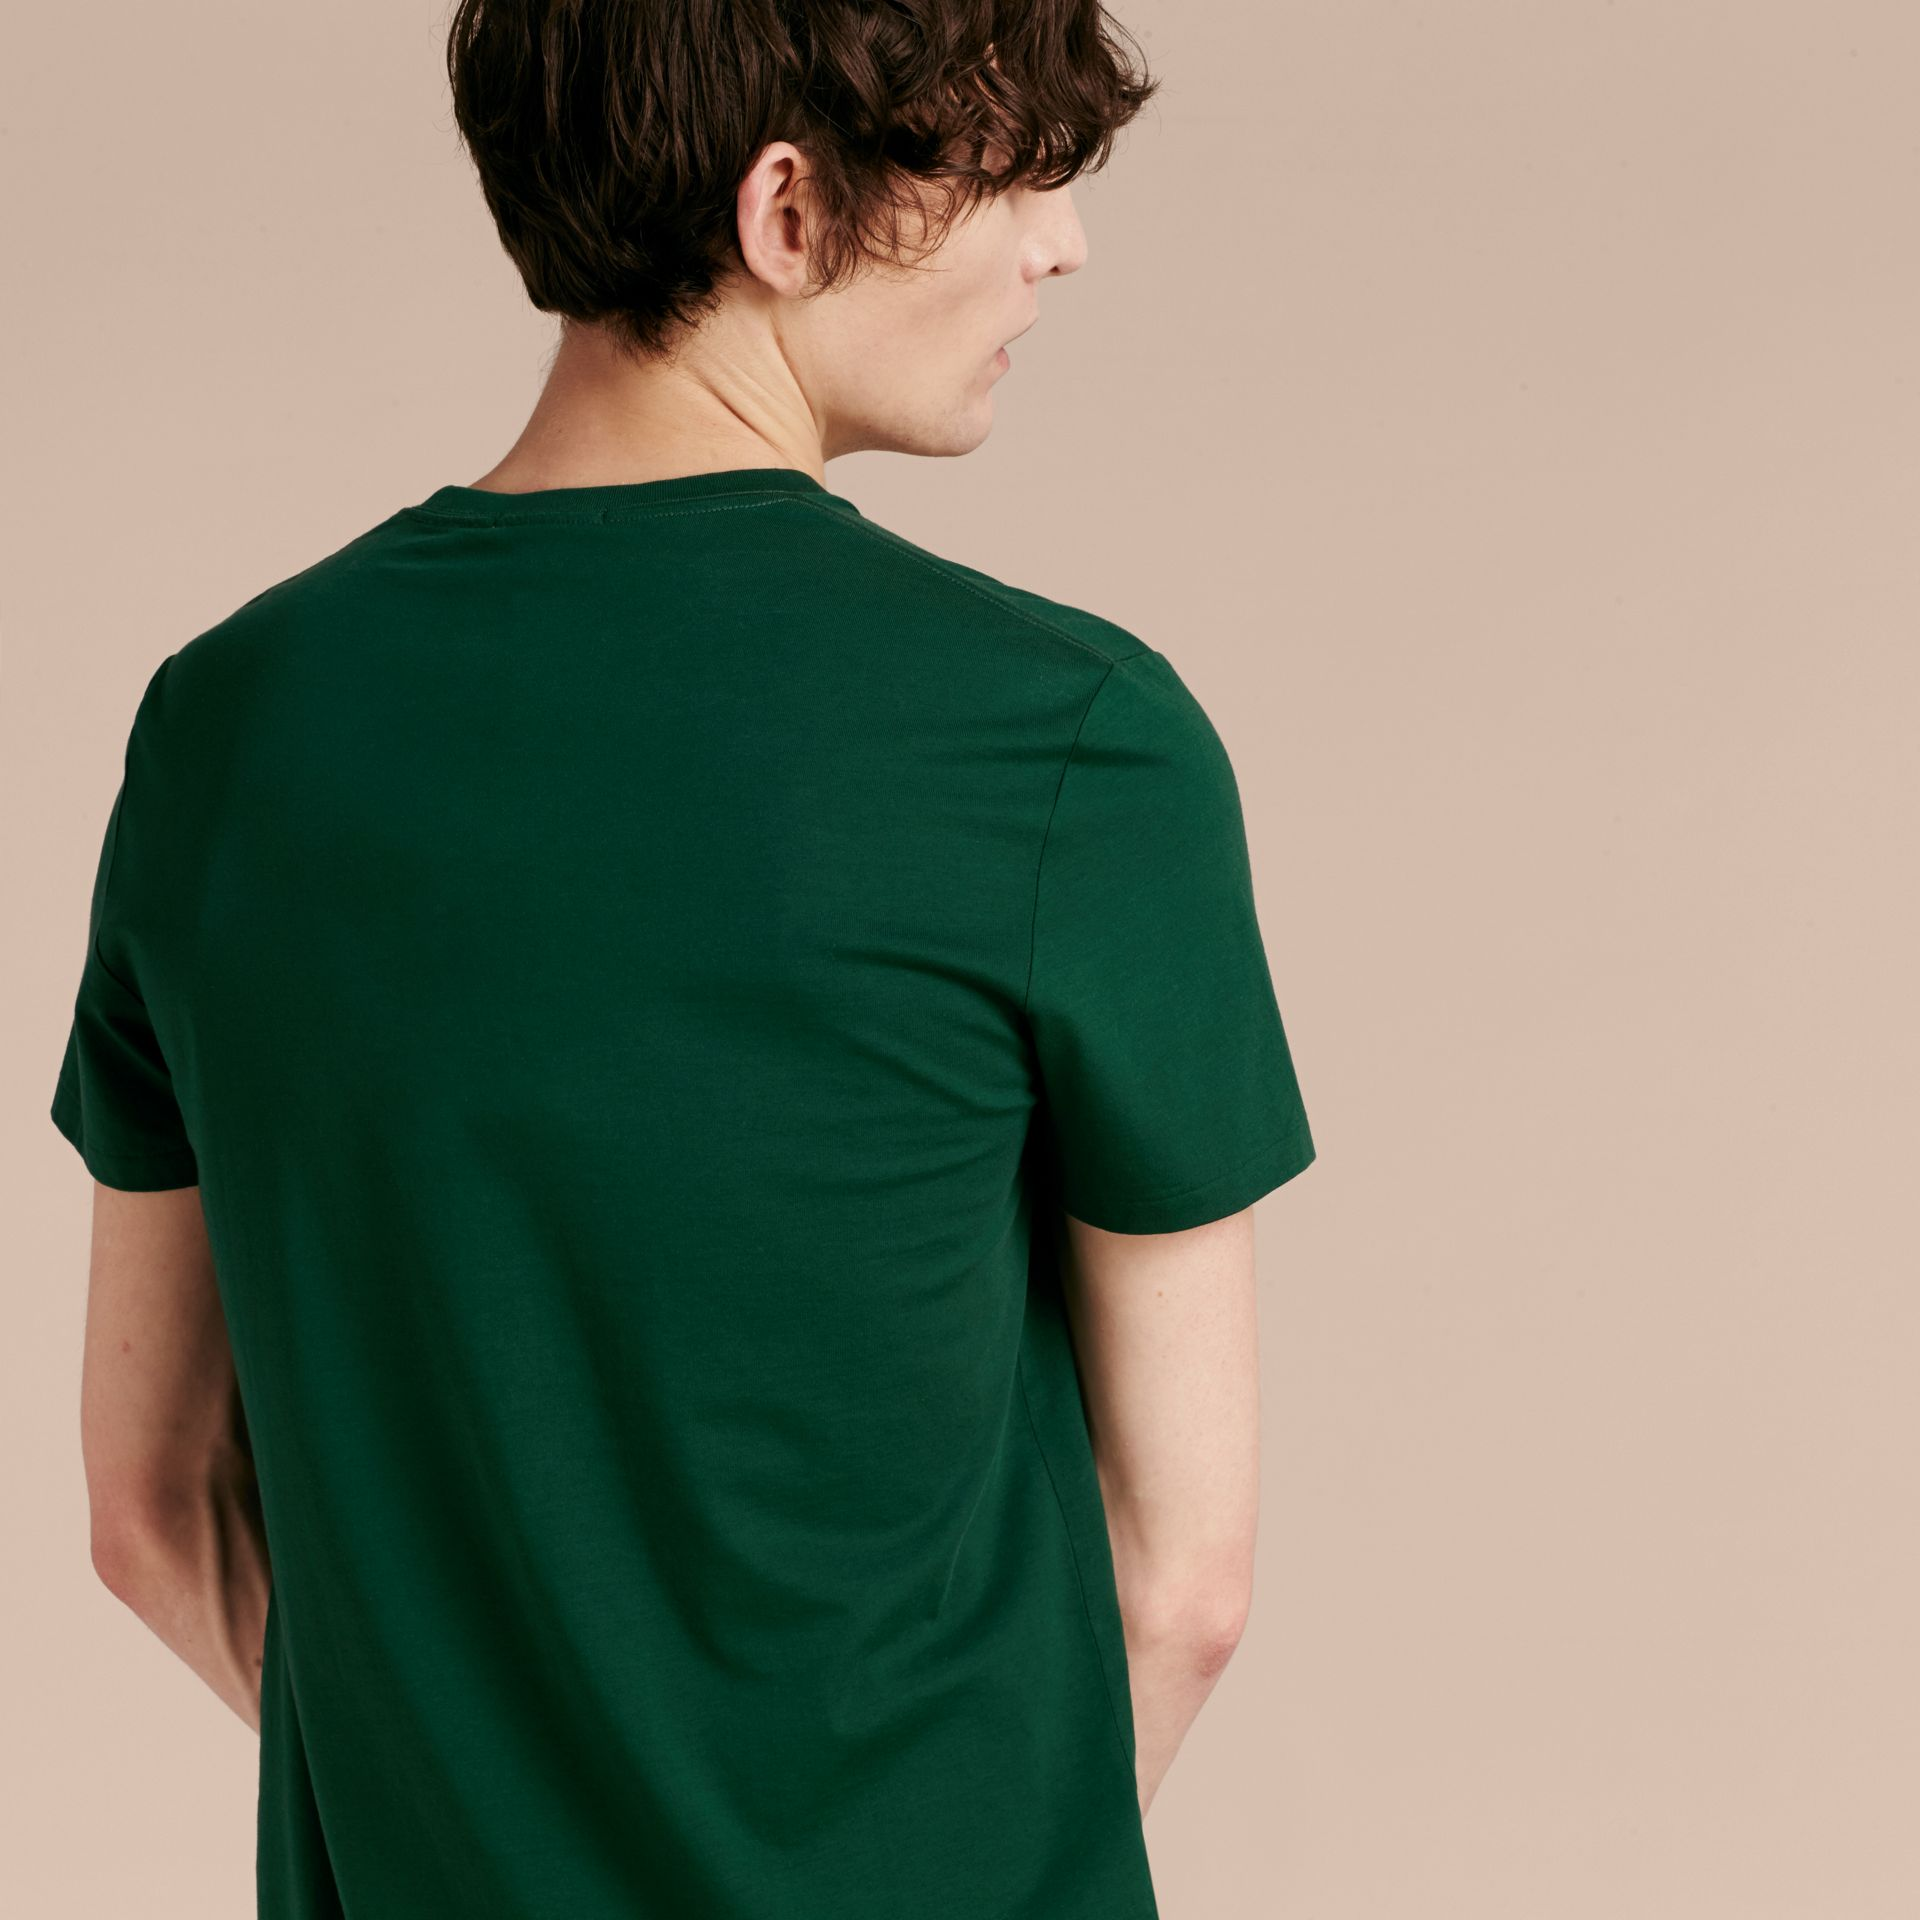 Racing green Liquid-soft Cotton T-Shirt Racing Green - gallery image 3